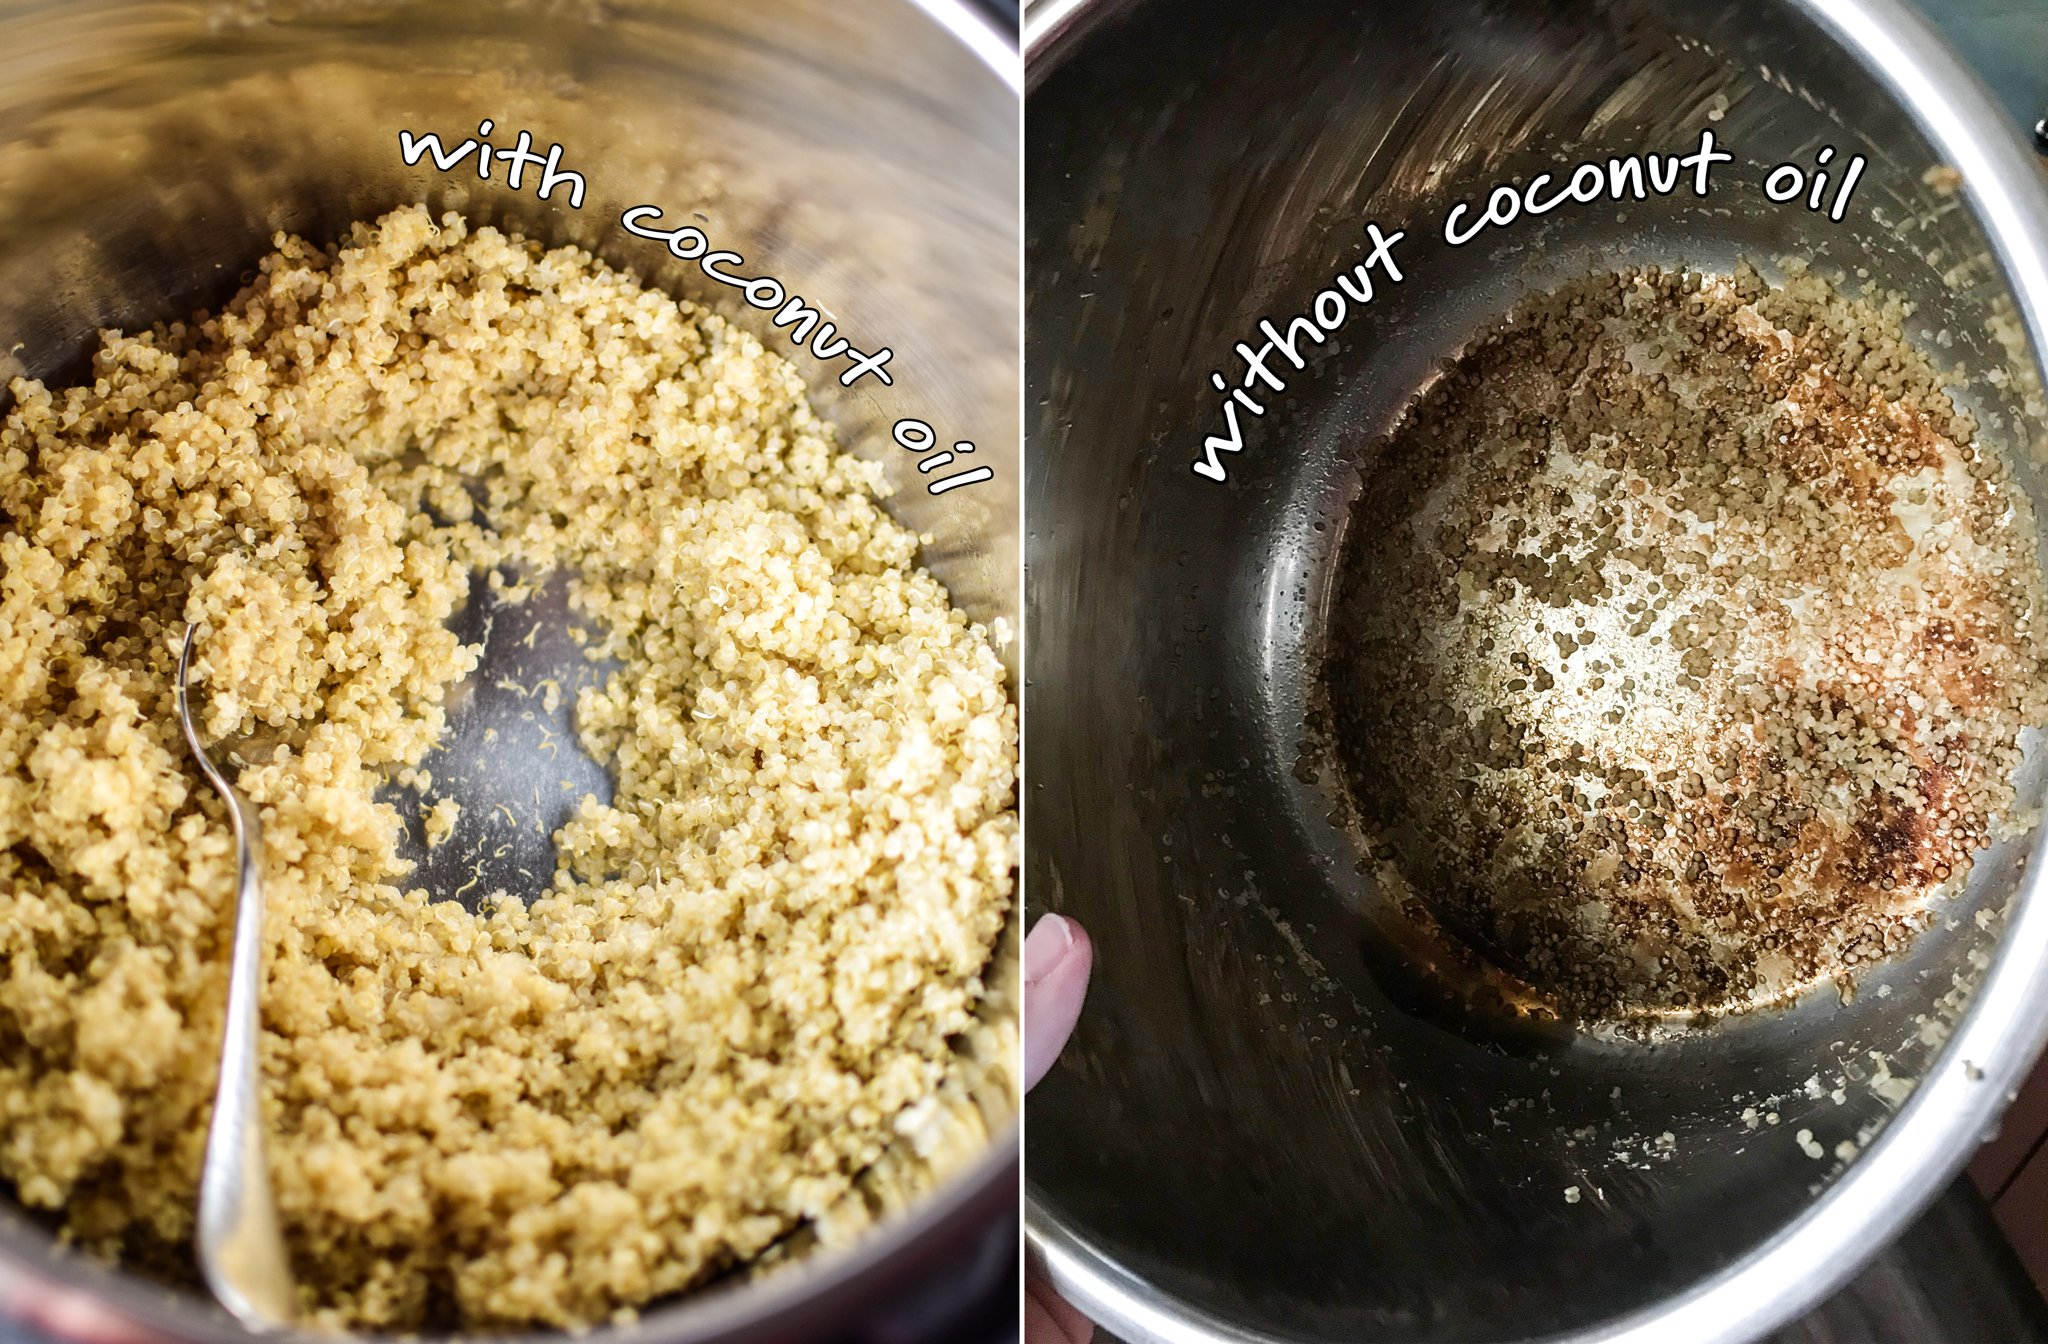 Two images showing the difference on the bottom of the pan when you use coconut oil versus when you don't. The left side without coconut oil is a bit more brown and dirty looking.